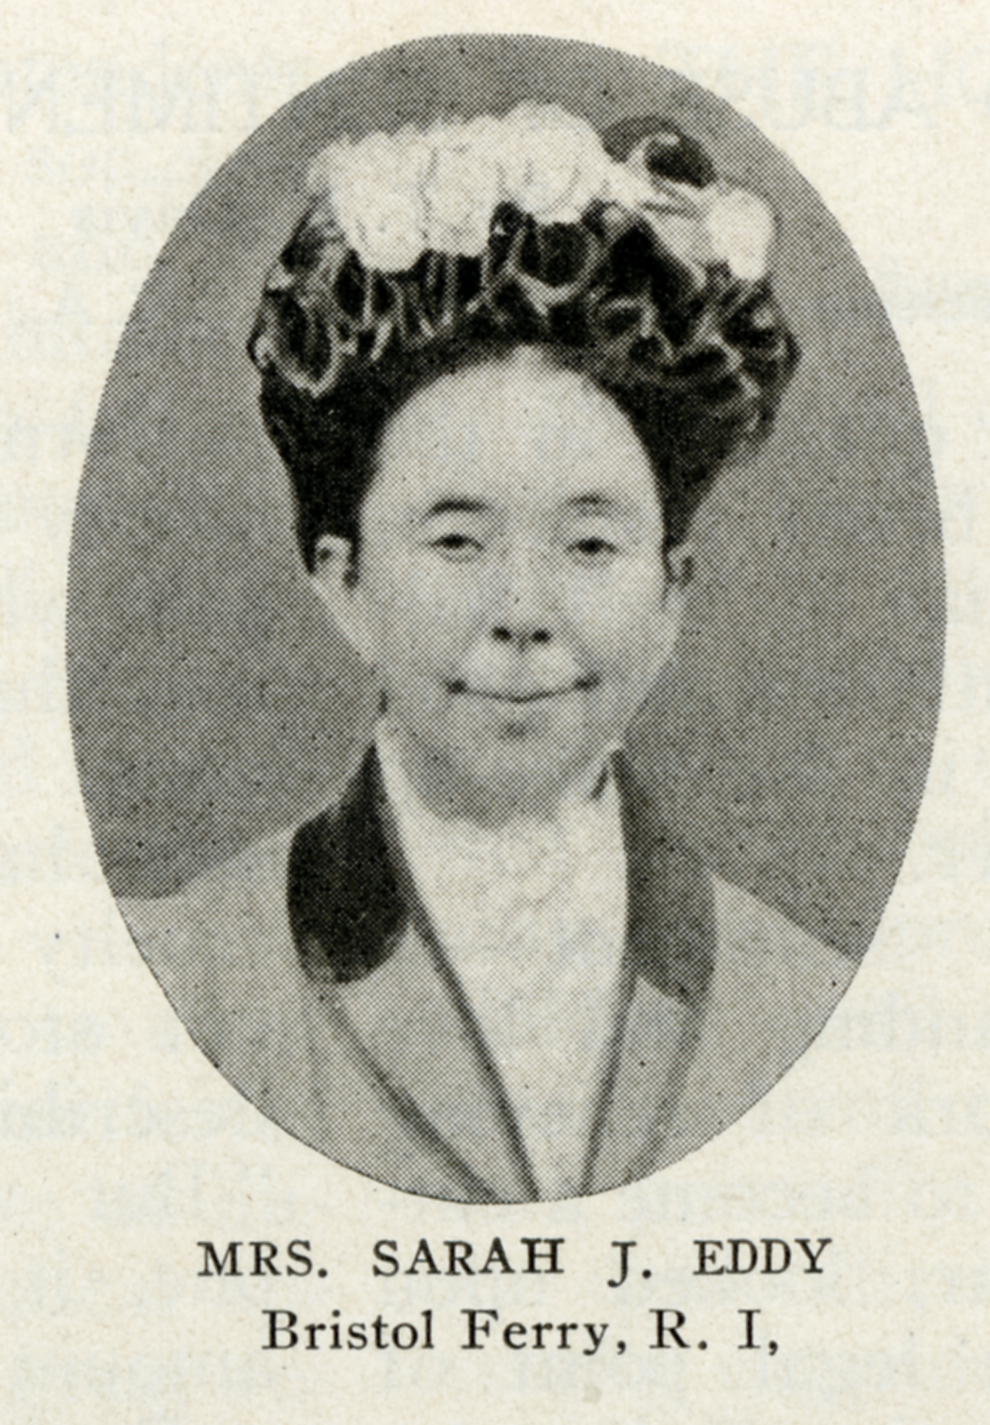 Image of Miss Sarah J. Eddy from Wikidata